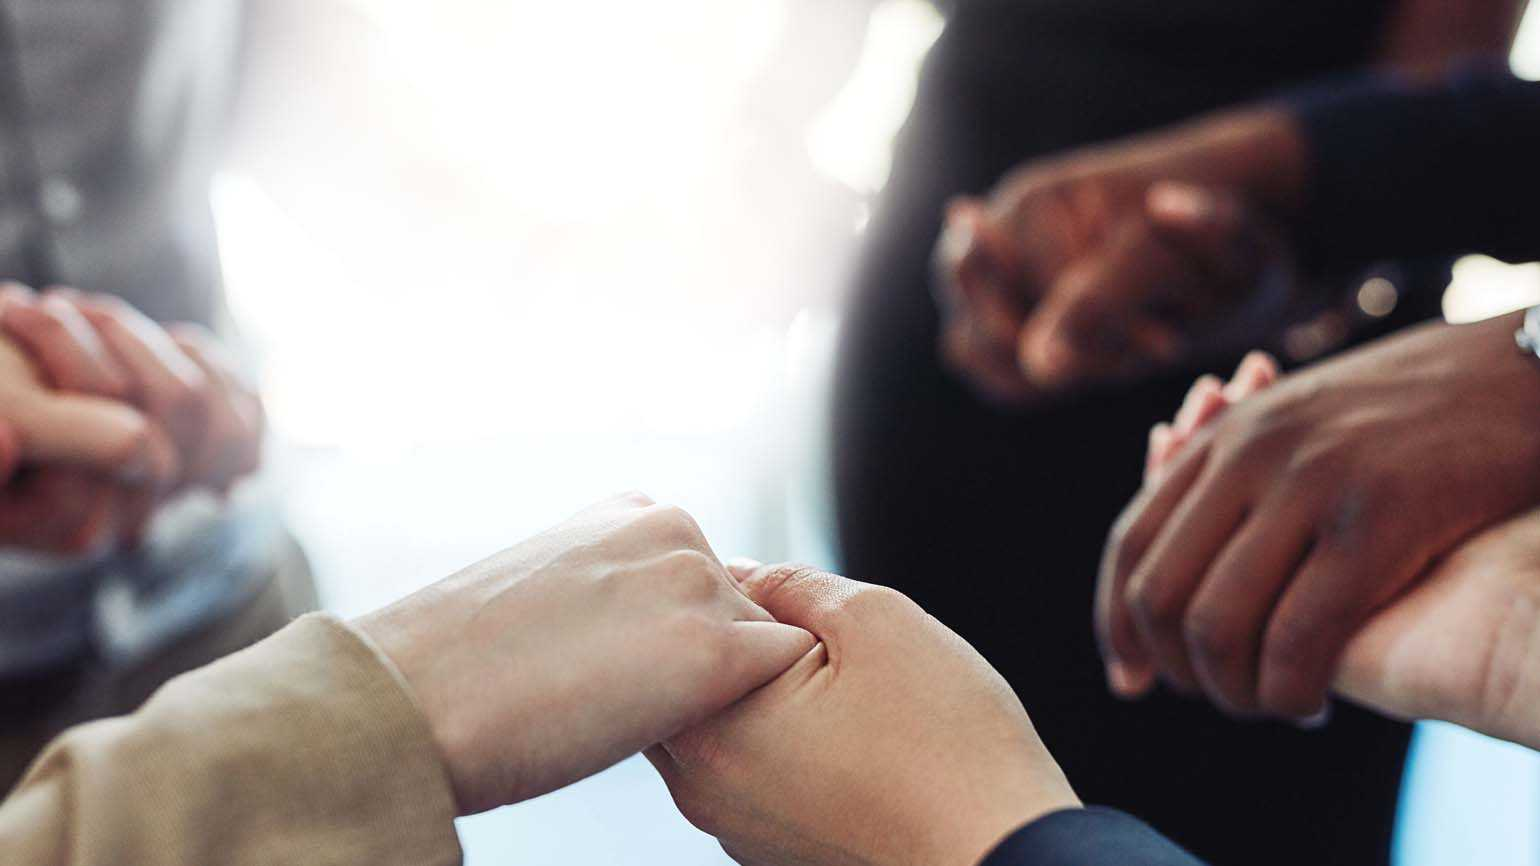 Hands holding each other in a circle; GETTY IMAGES/ISTOCKPHOTO